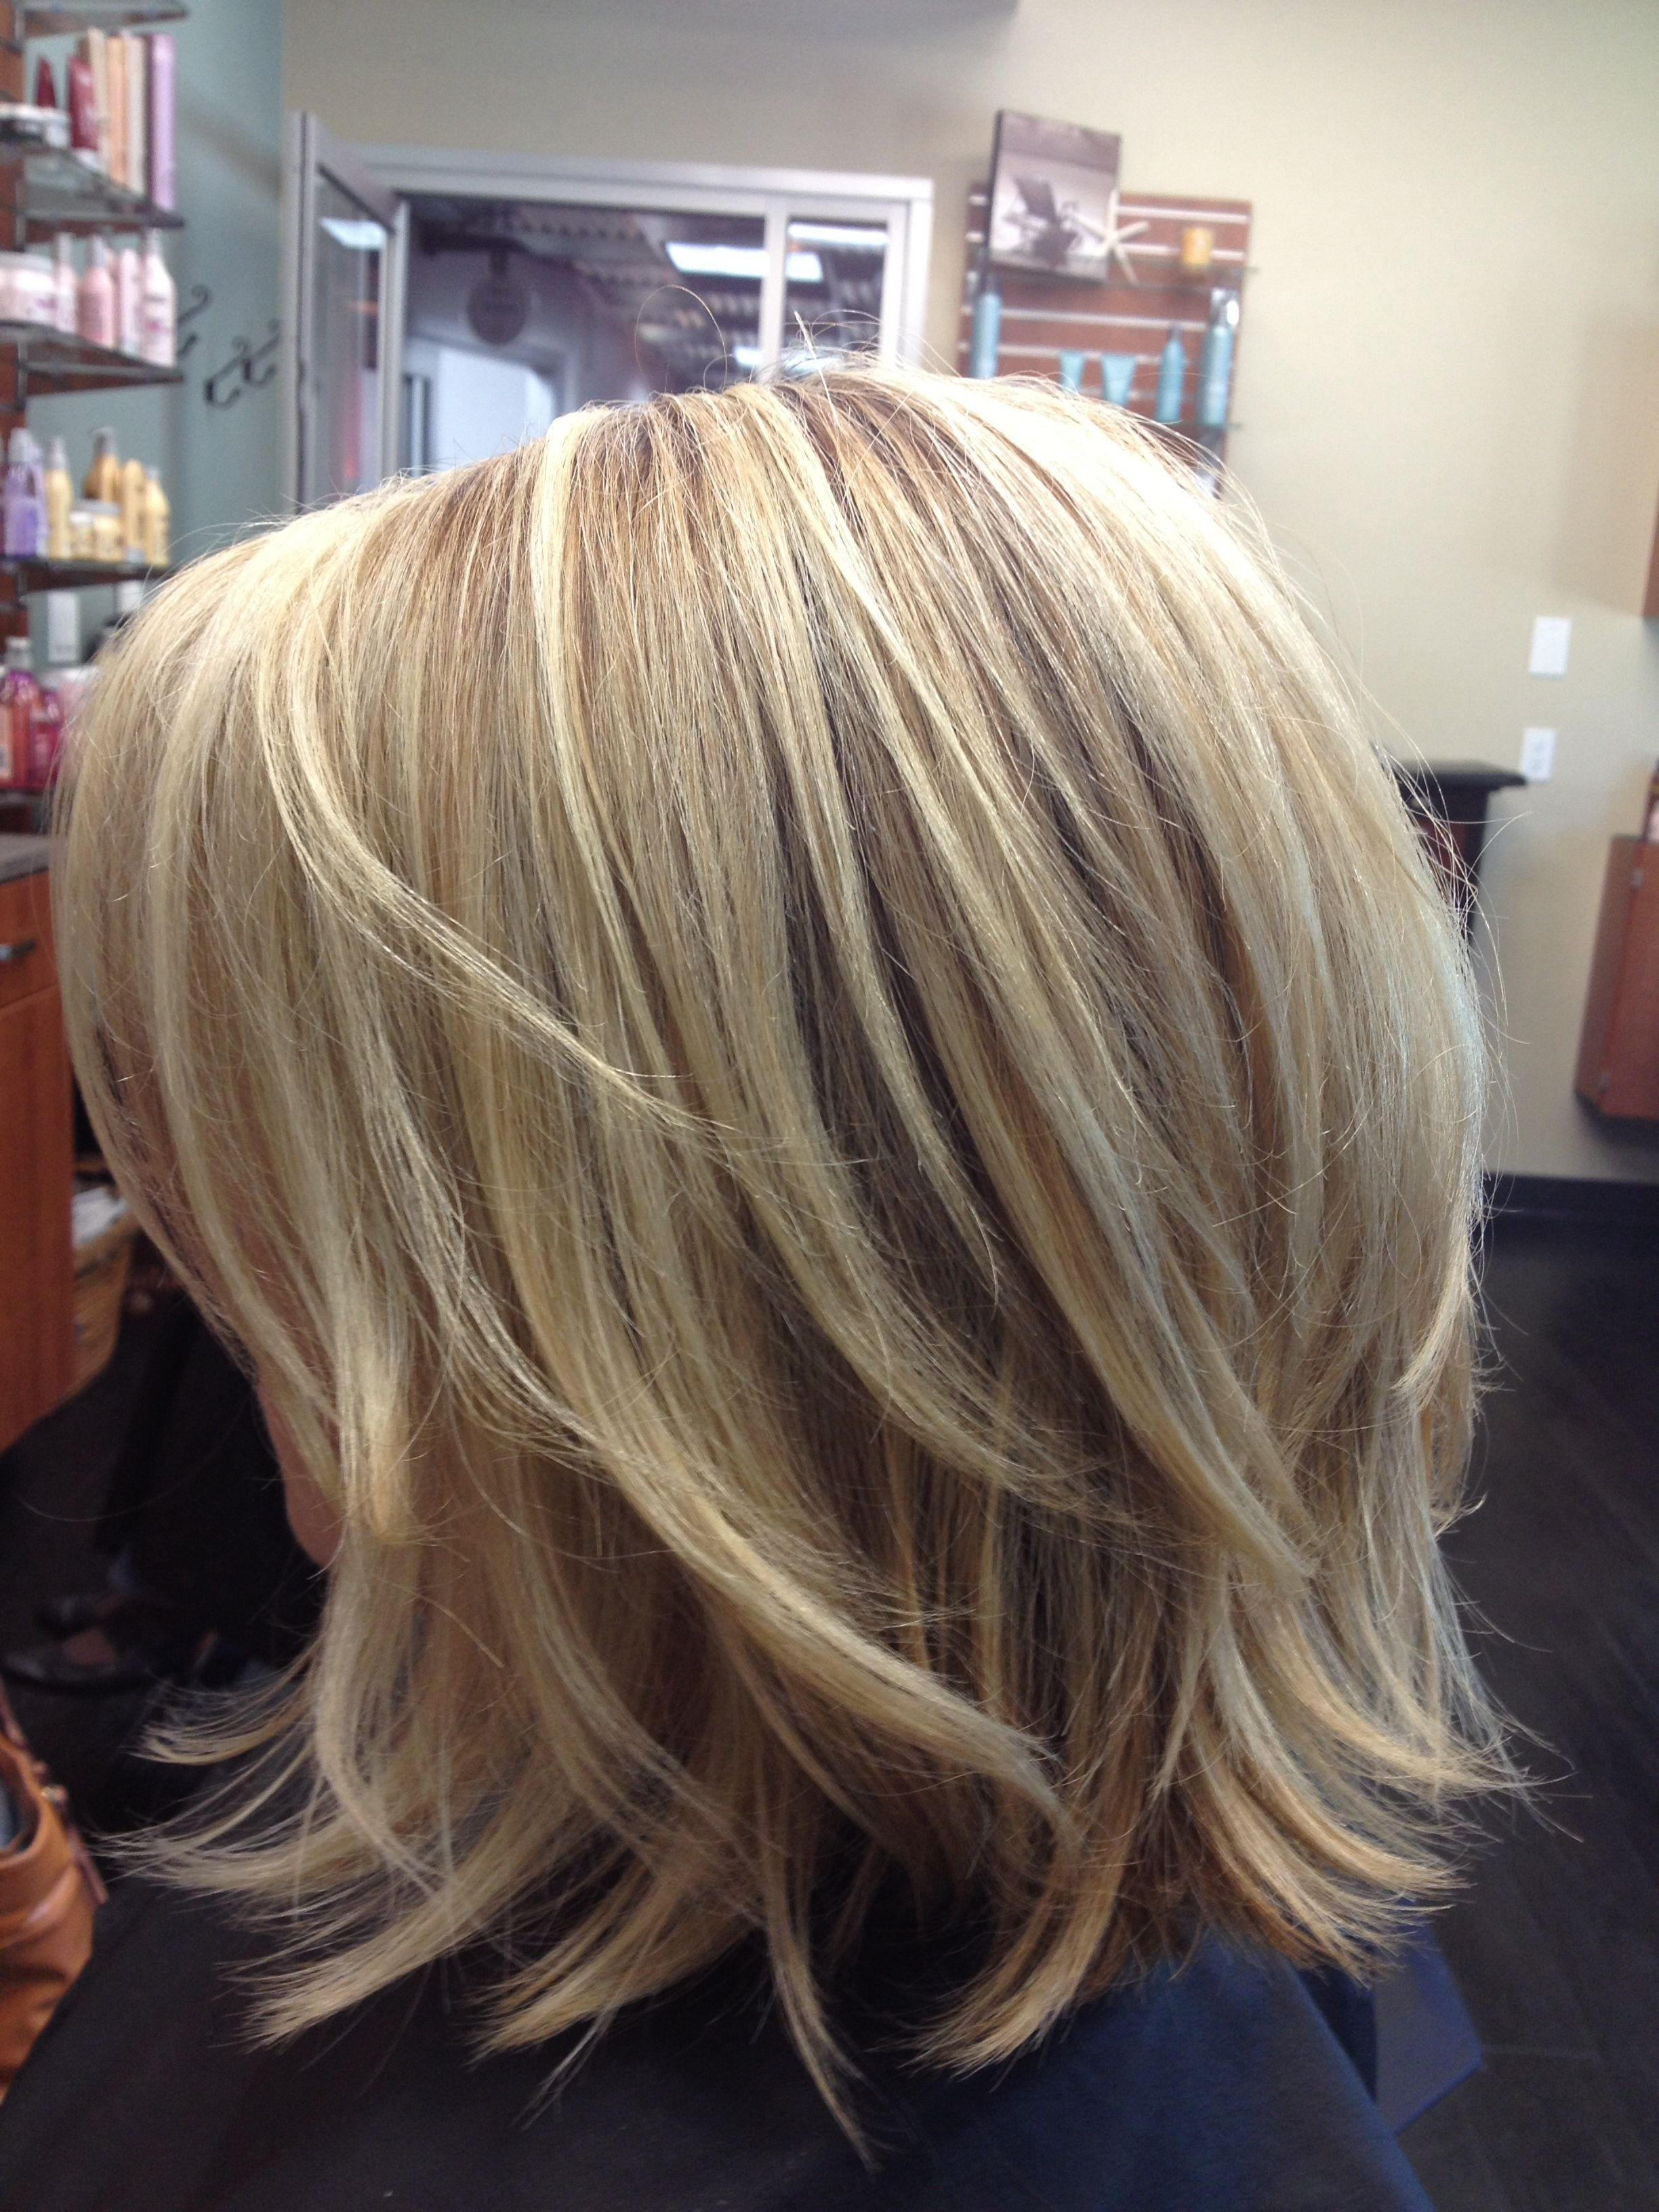 2017 Feathered Cut Blonde Hairstyles With Middle Part In 14 Trendy Medium Layered Hairstyles In  (View 1 of 20)